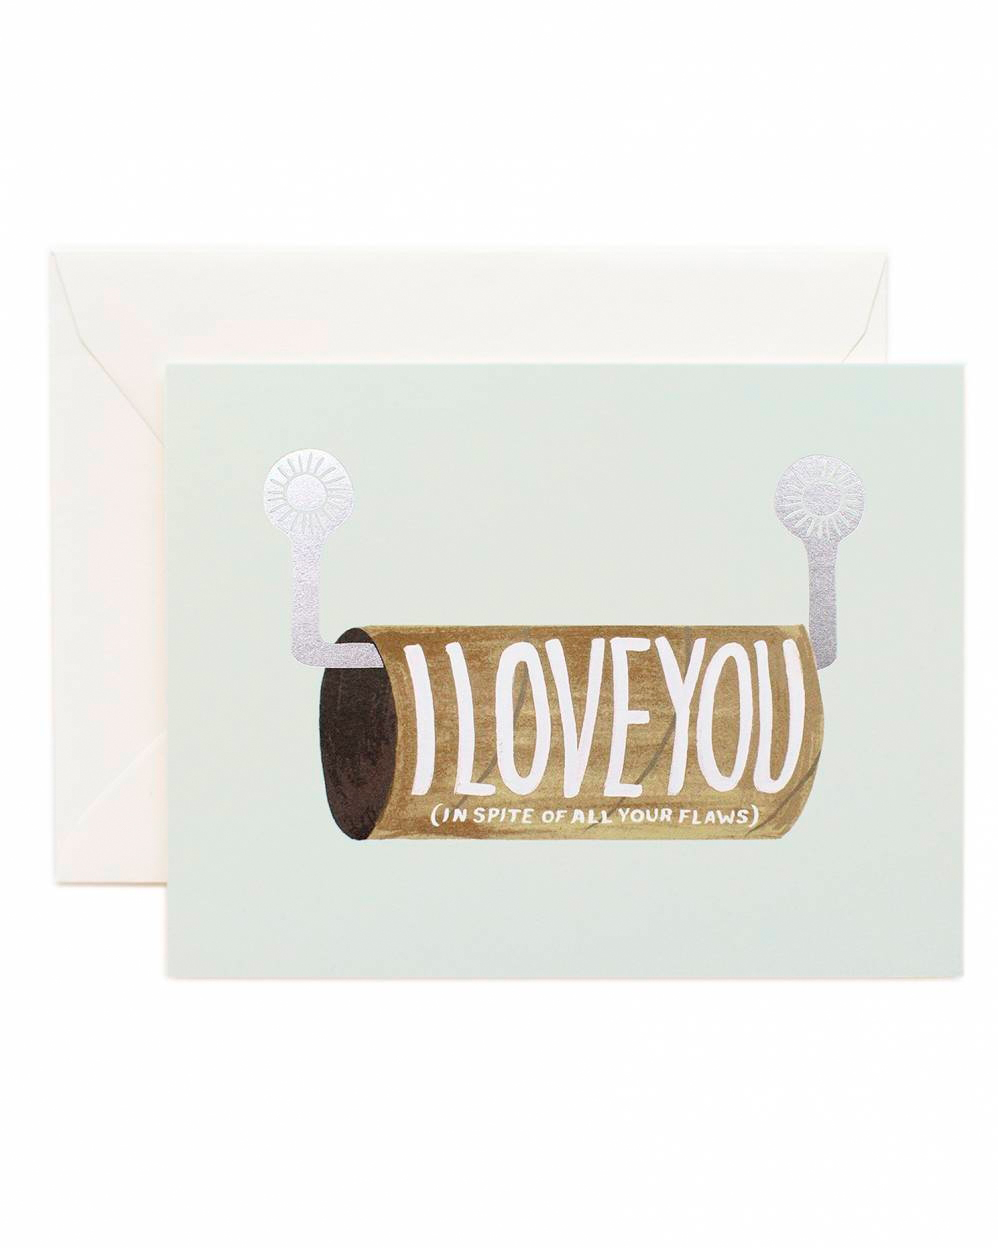 valentines-card-rifle-in-spite-of-your-flaws-0115.jpg